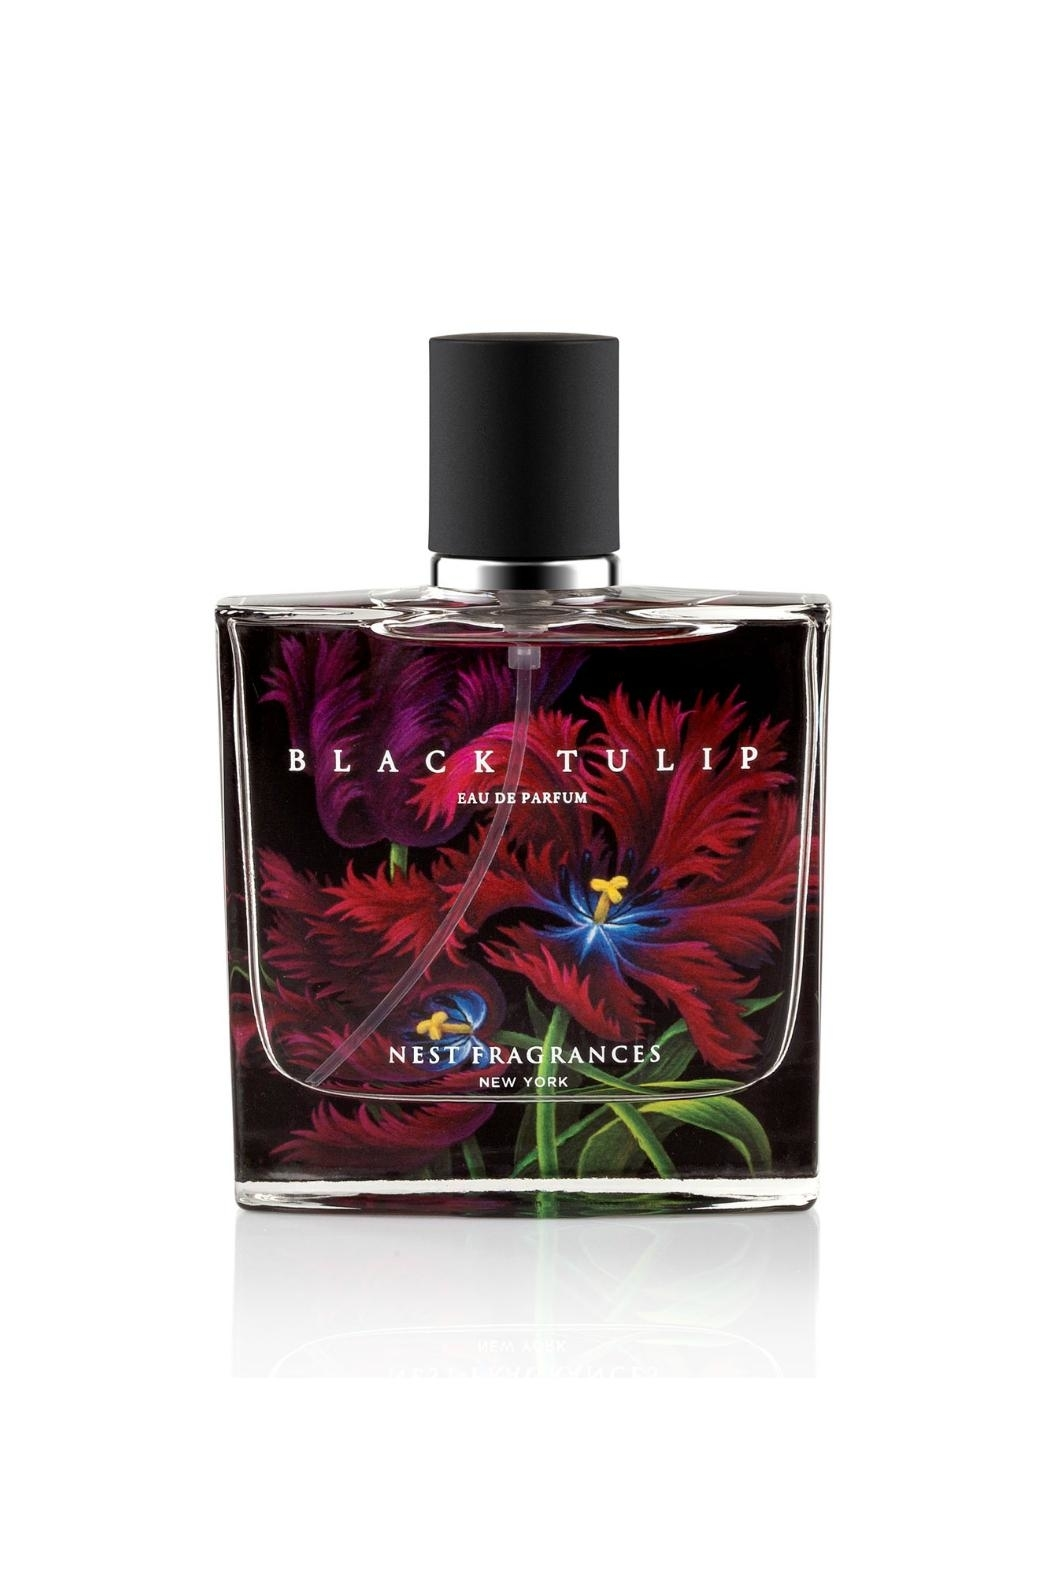 Nest Fragrances Black Tulip Eaudeparfum - Main Image